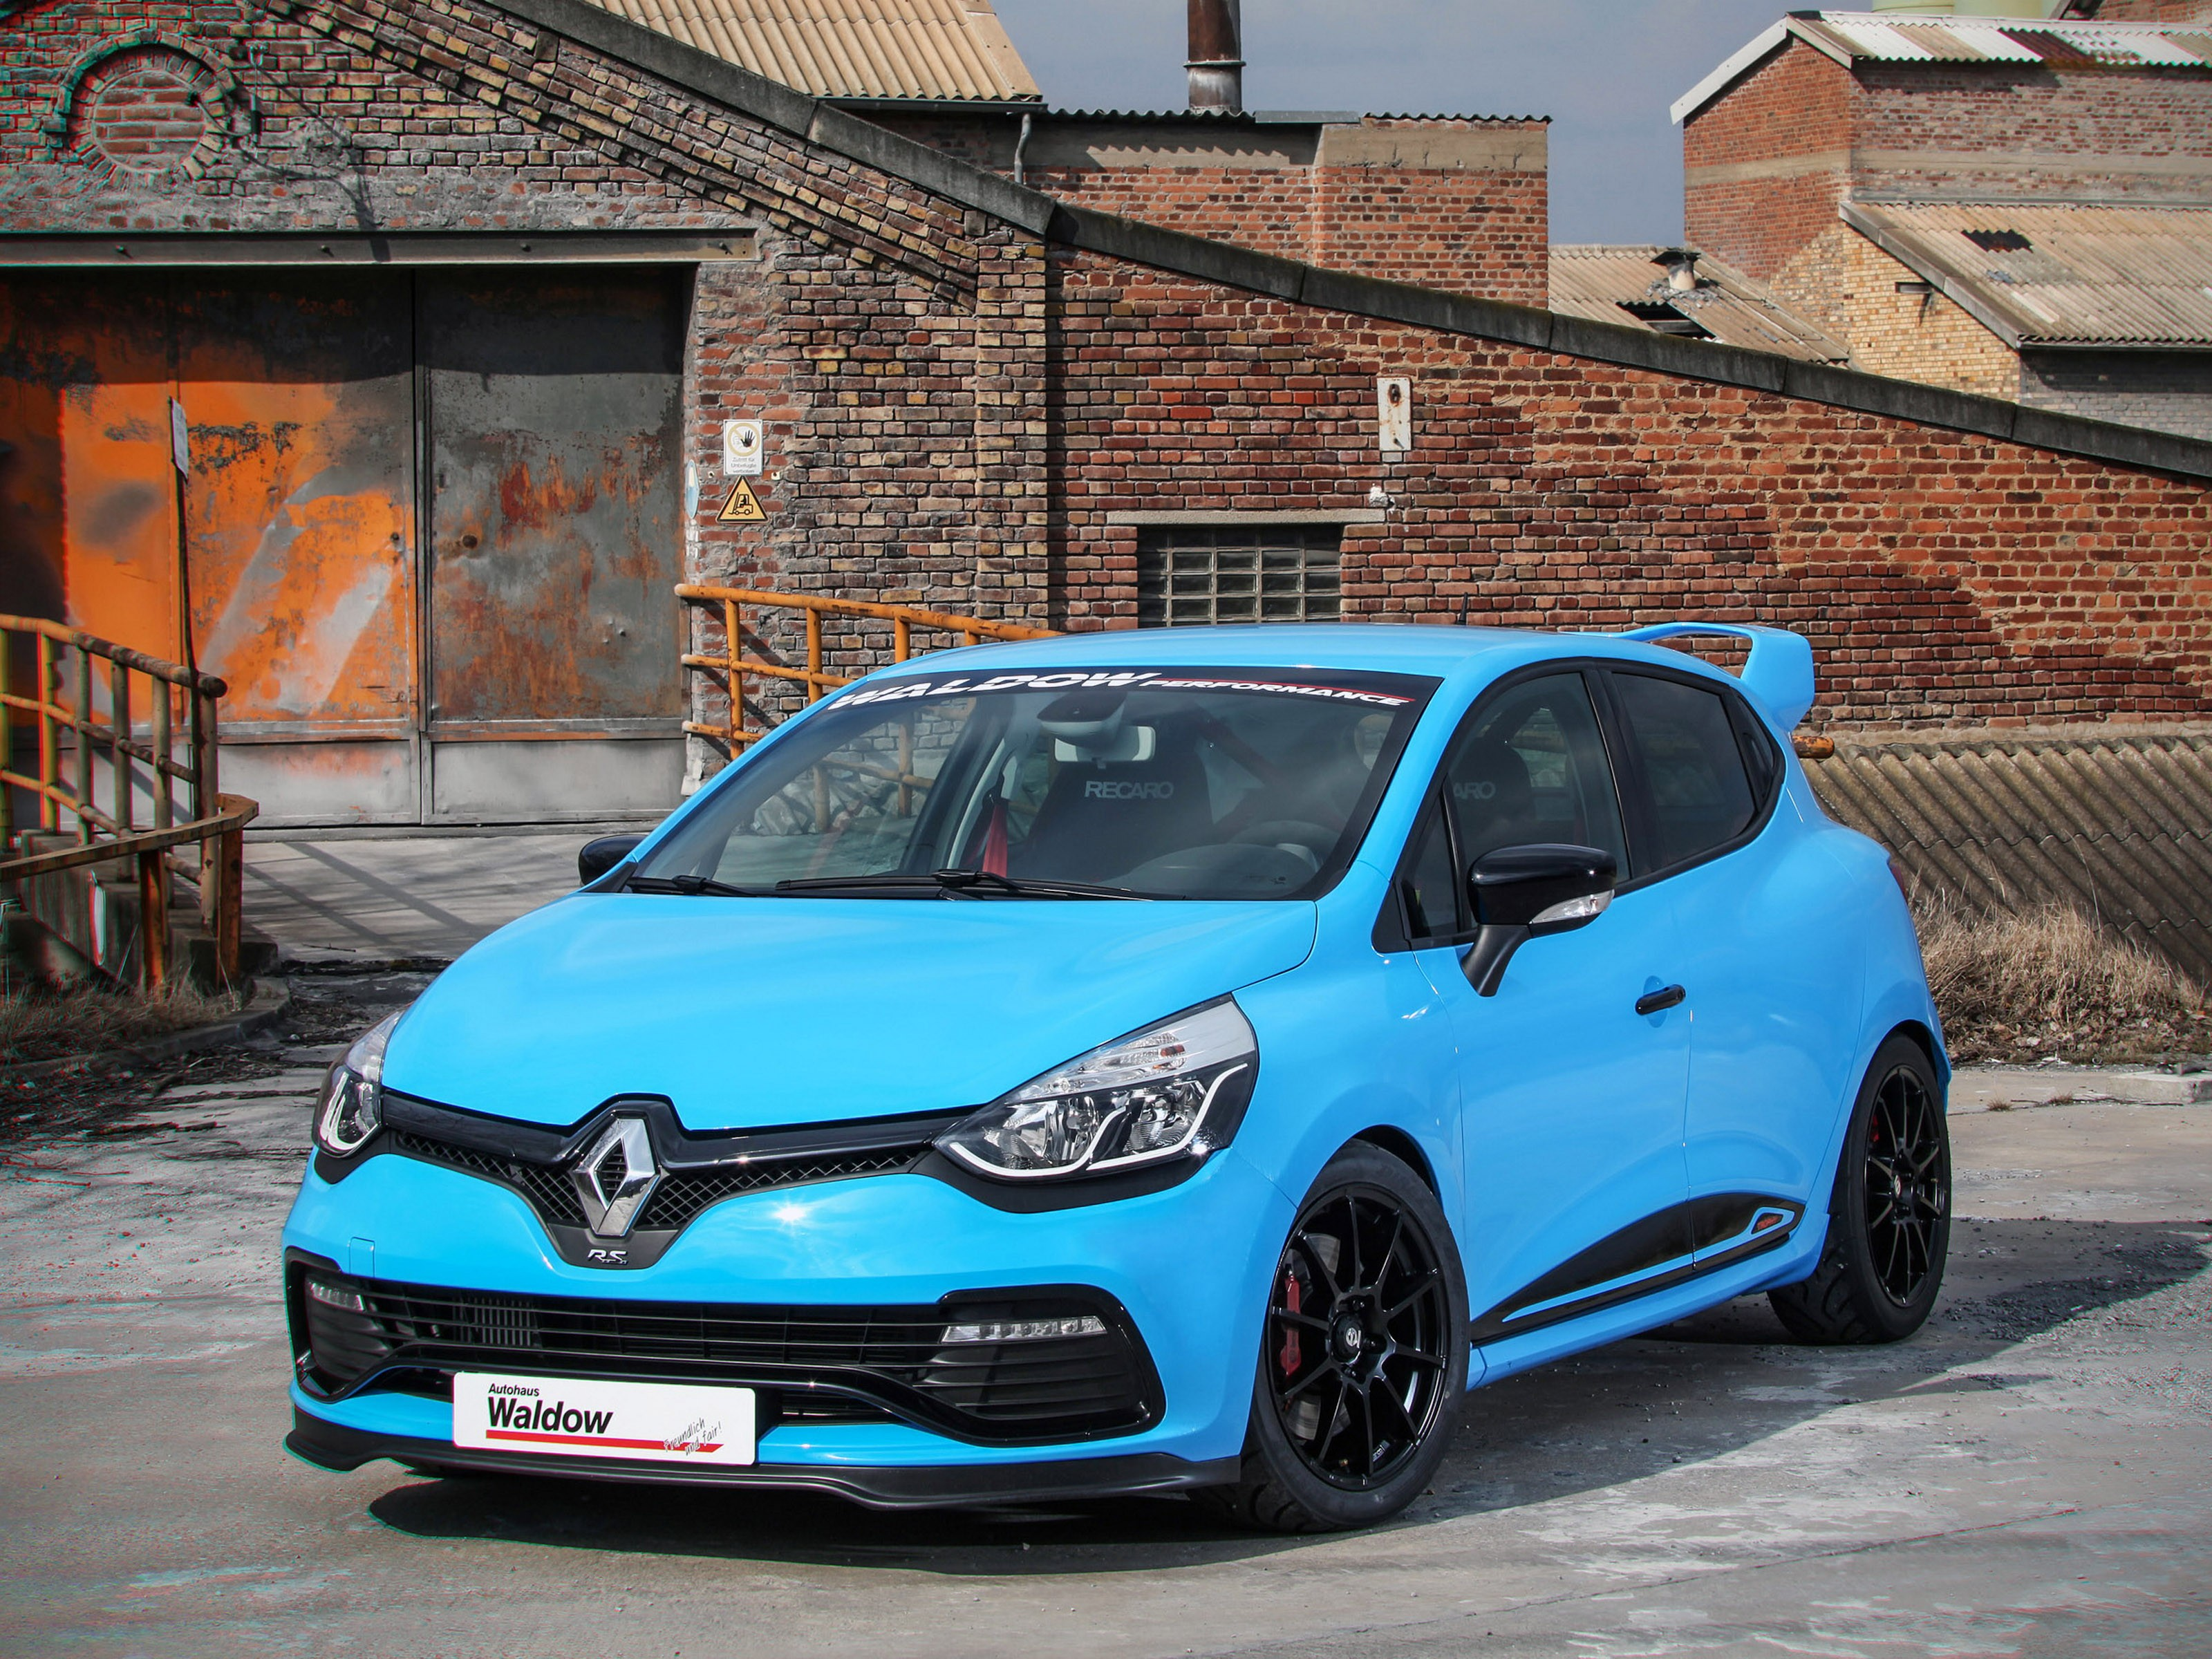 2016 Renault Clio R.S. Waldow